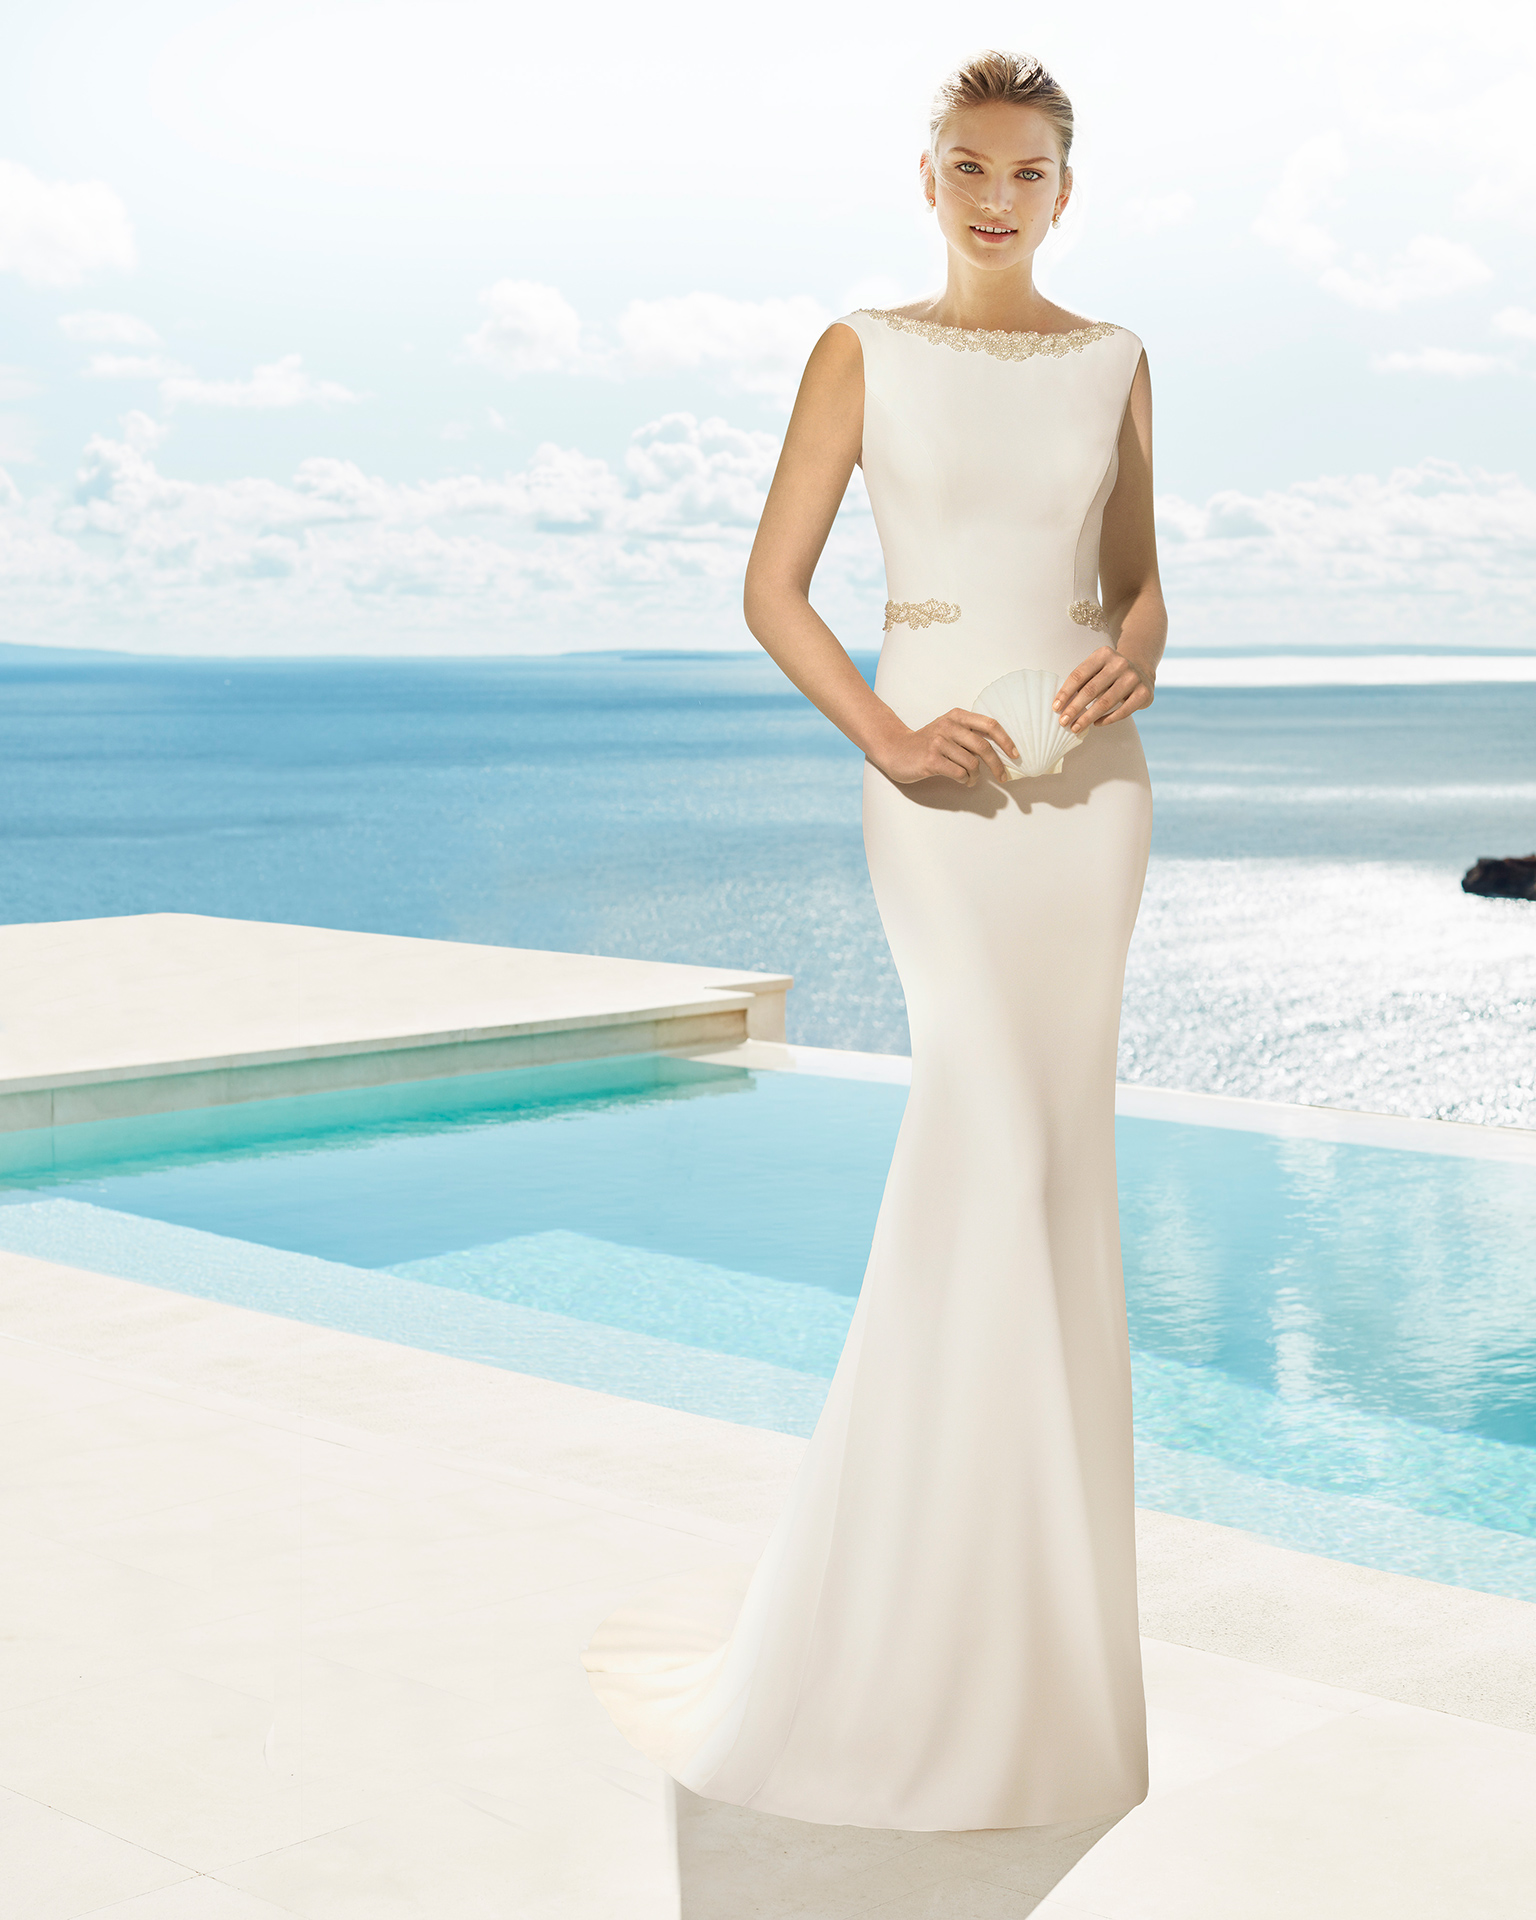 Umbra Wedding Arie 2018Colección Beach Novia EWD2H9I